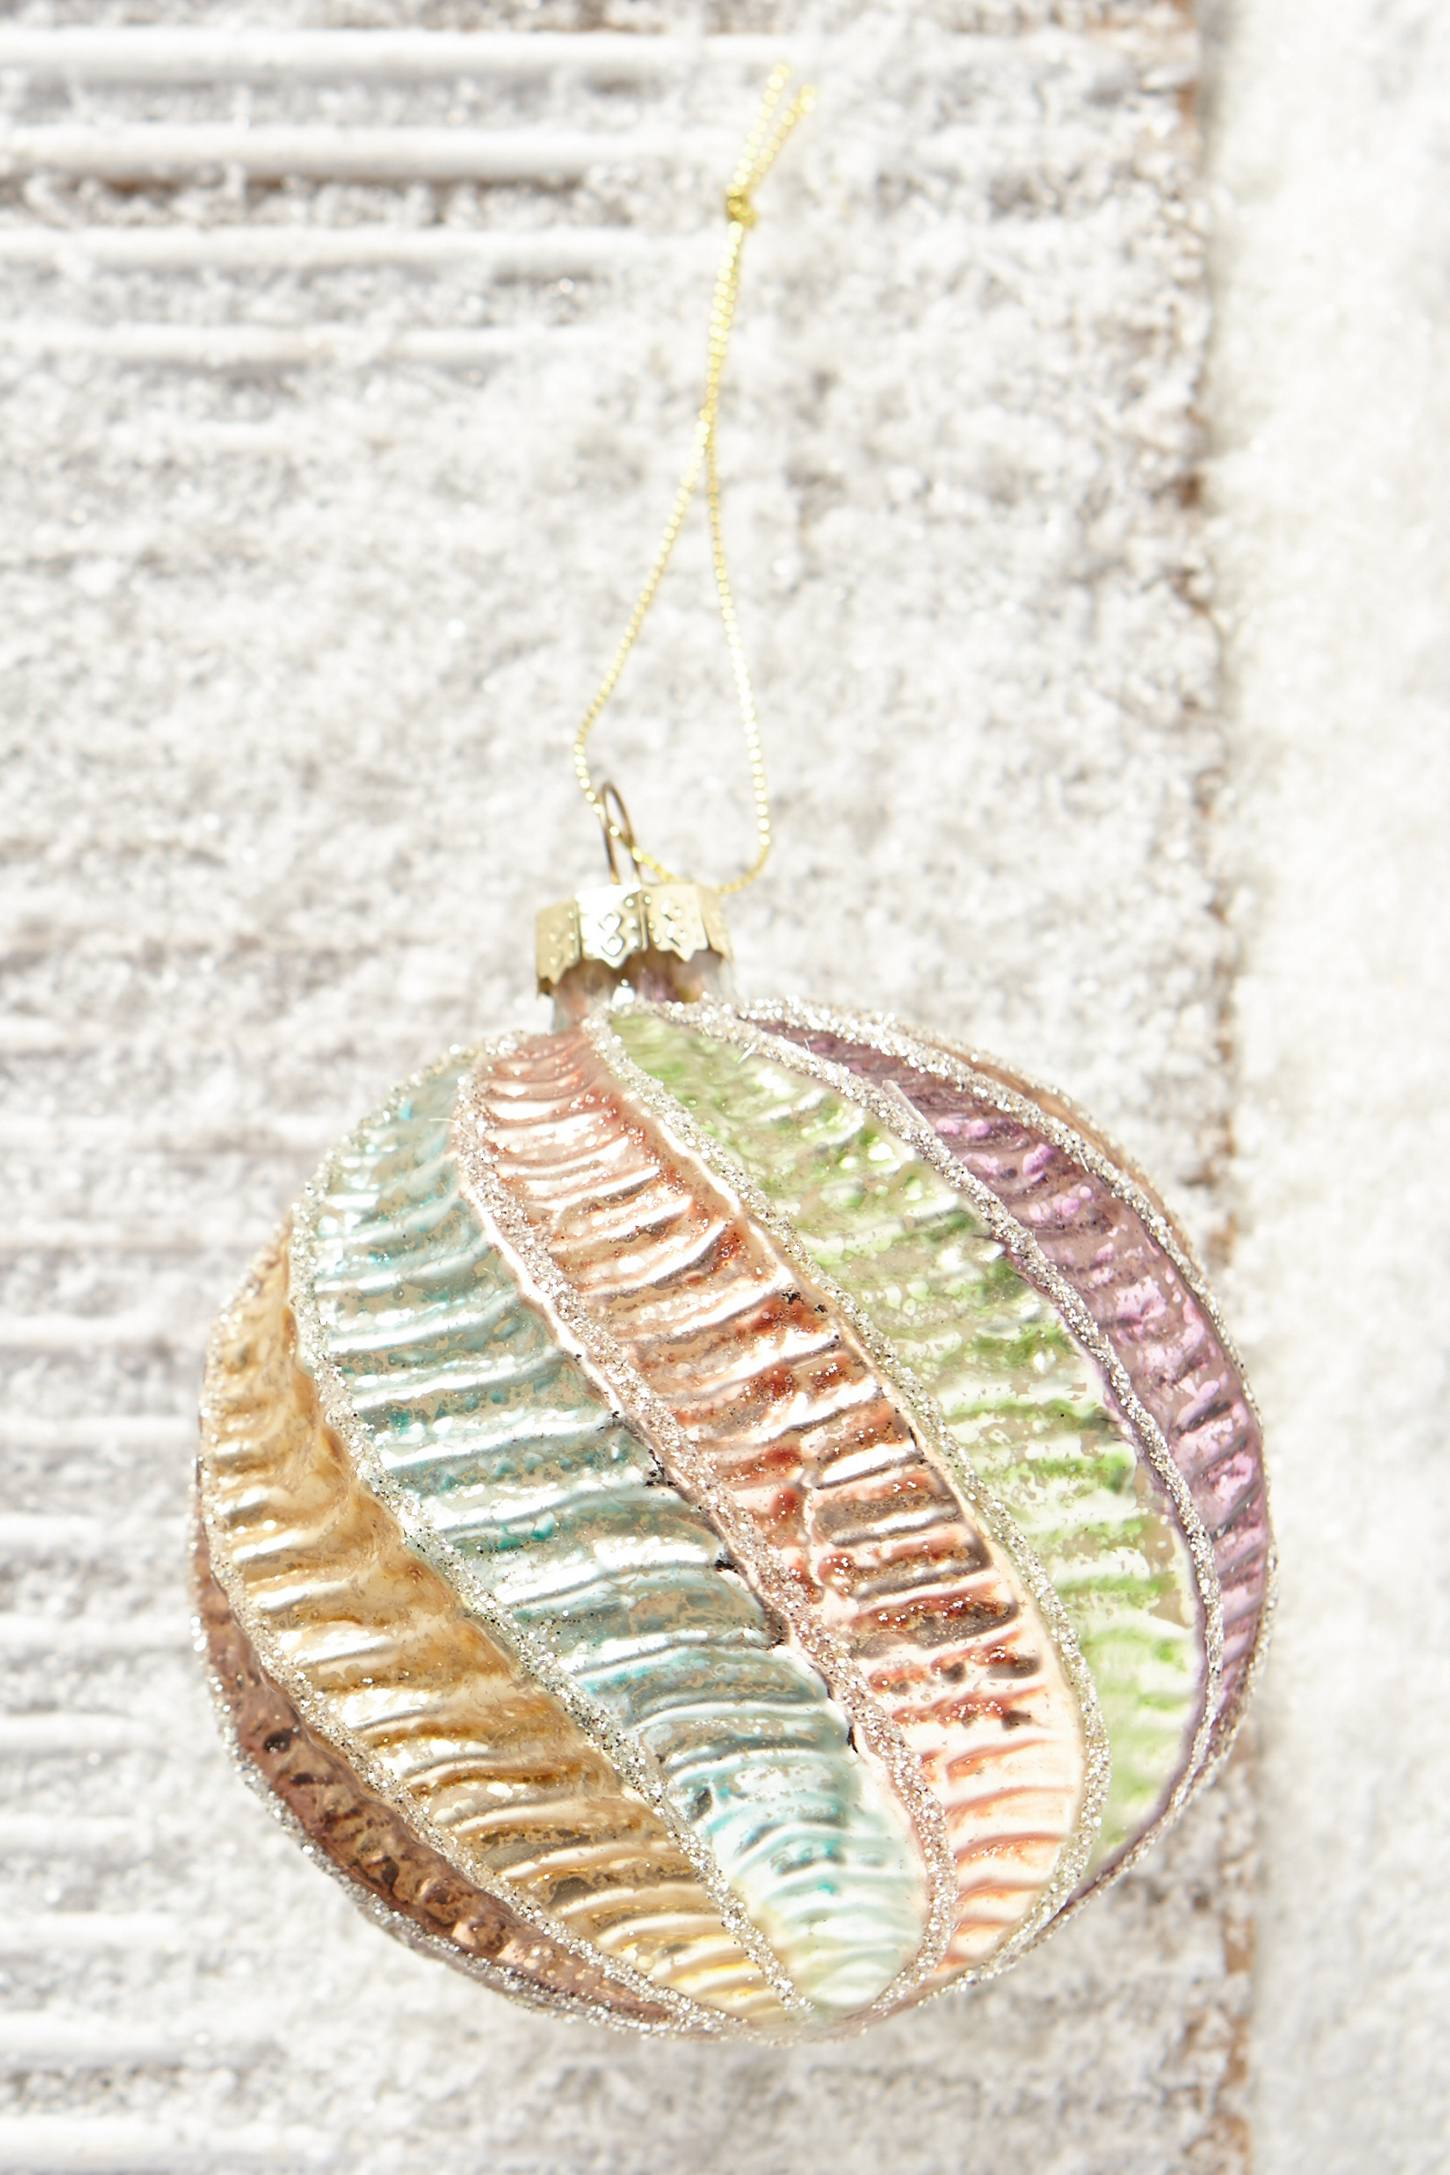 Ribbon Candy Ornament